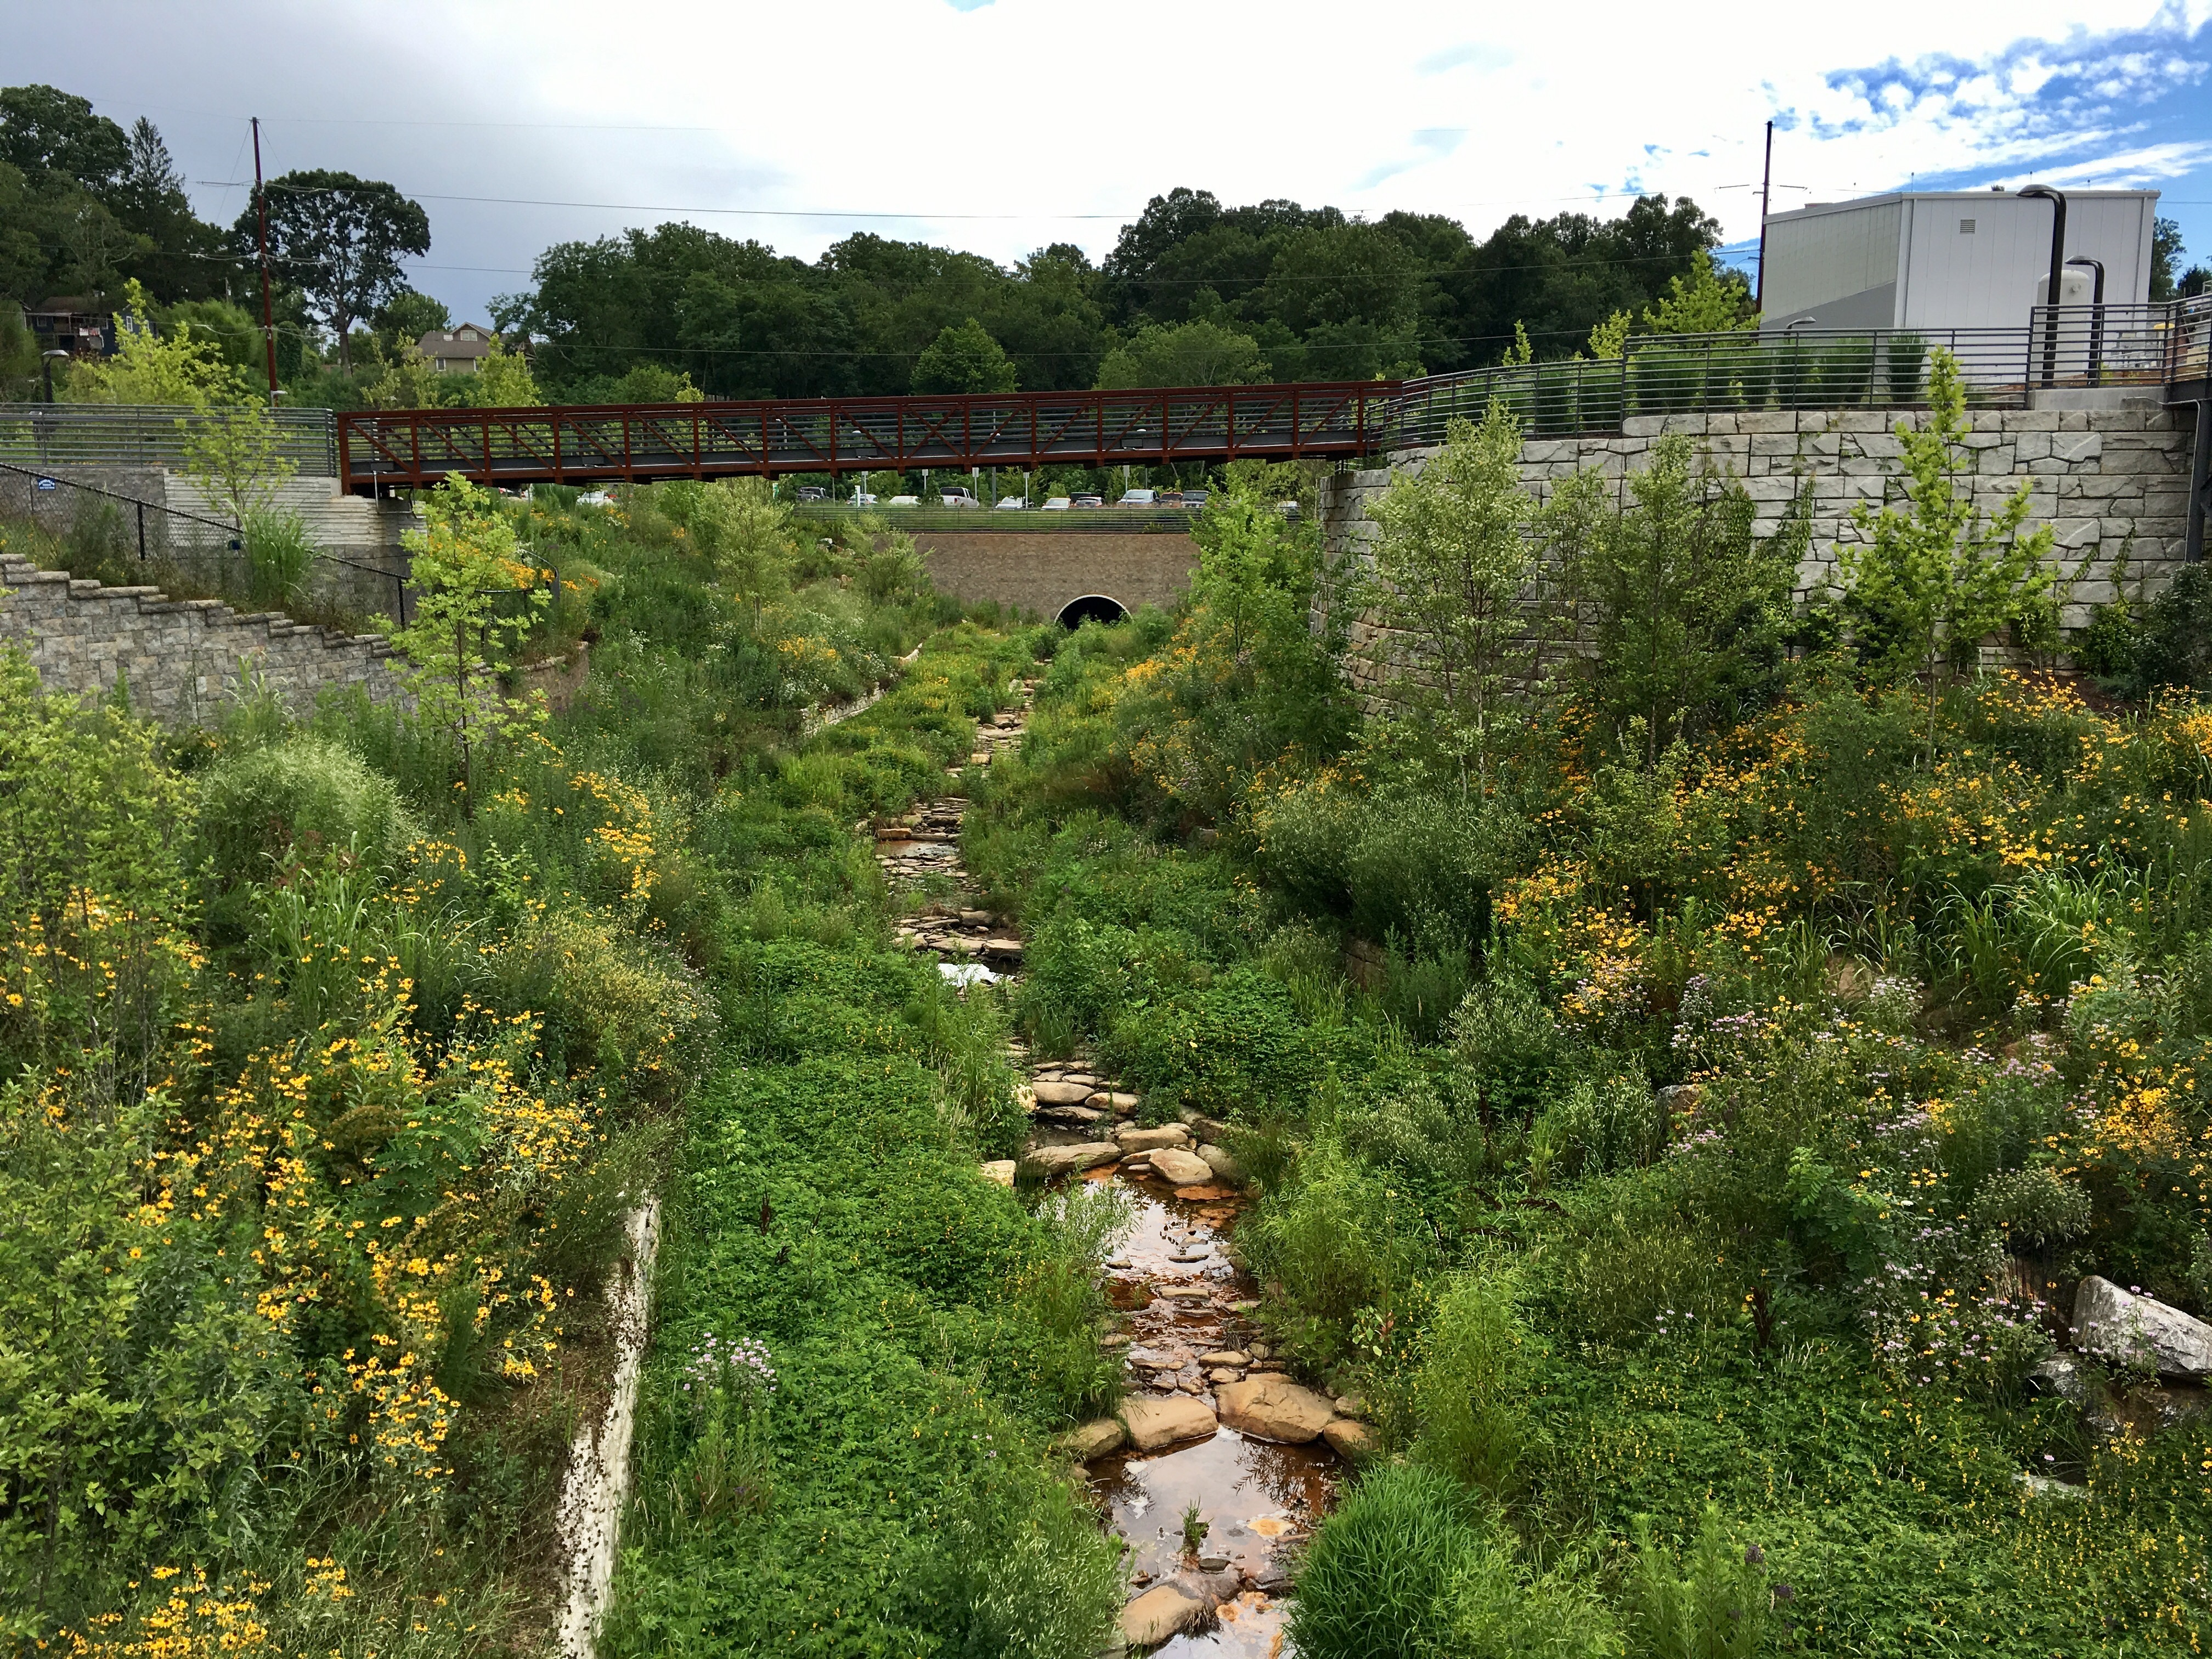 Lush pollinator habitat created on a brownfield site in Asheville, North Carolina, by the New Belgium brewery.